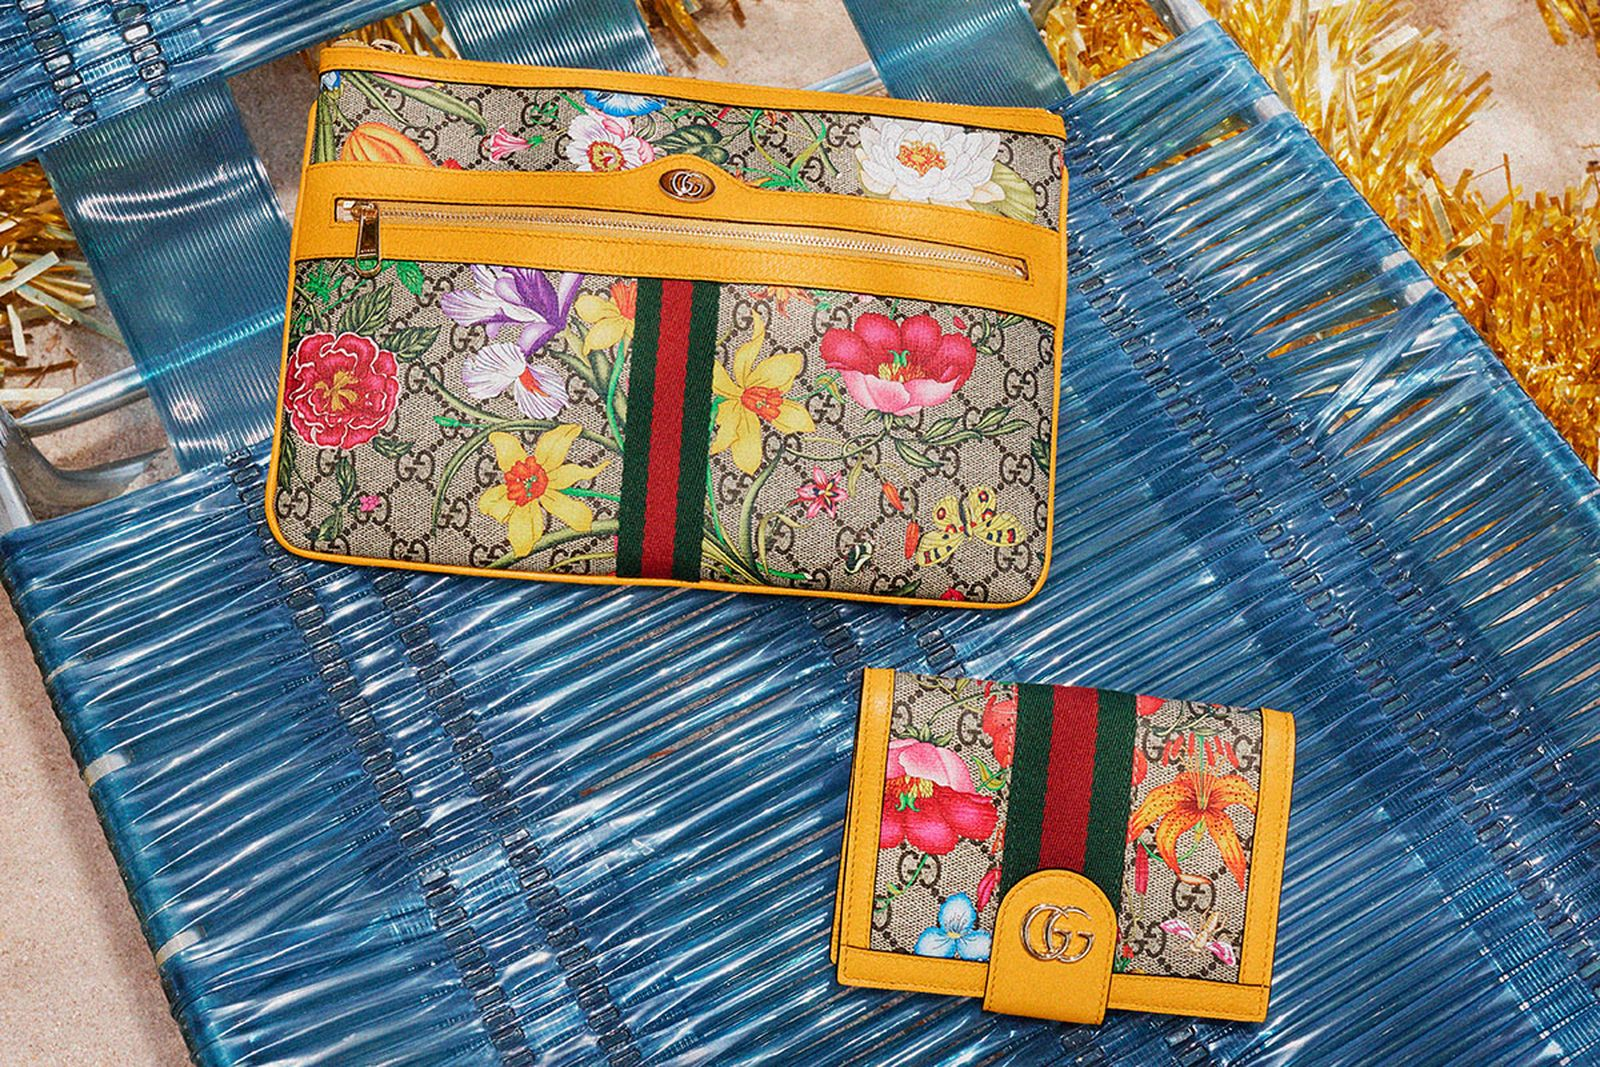 gucci-gift-giving-campaign-2019-57